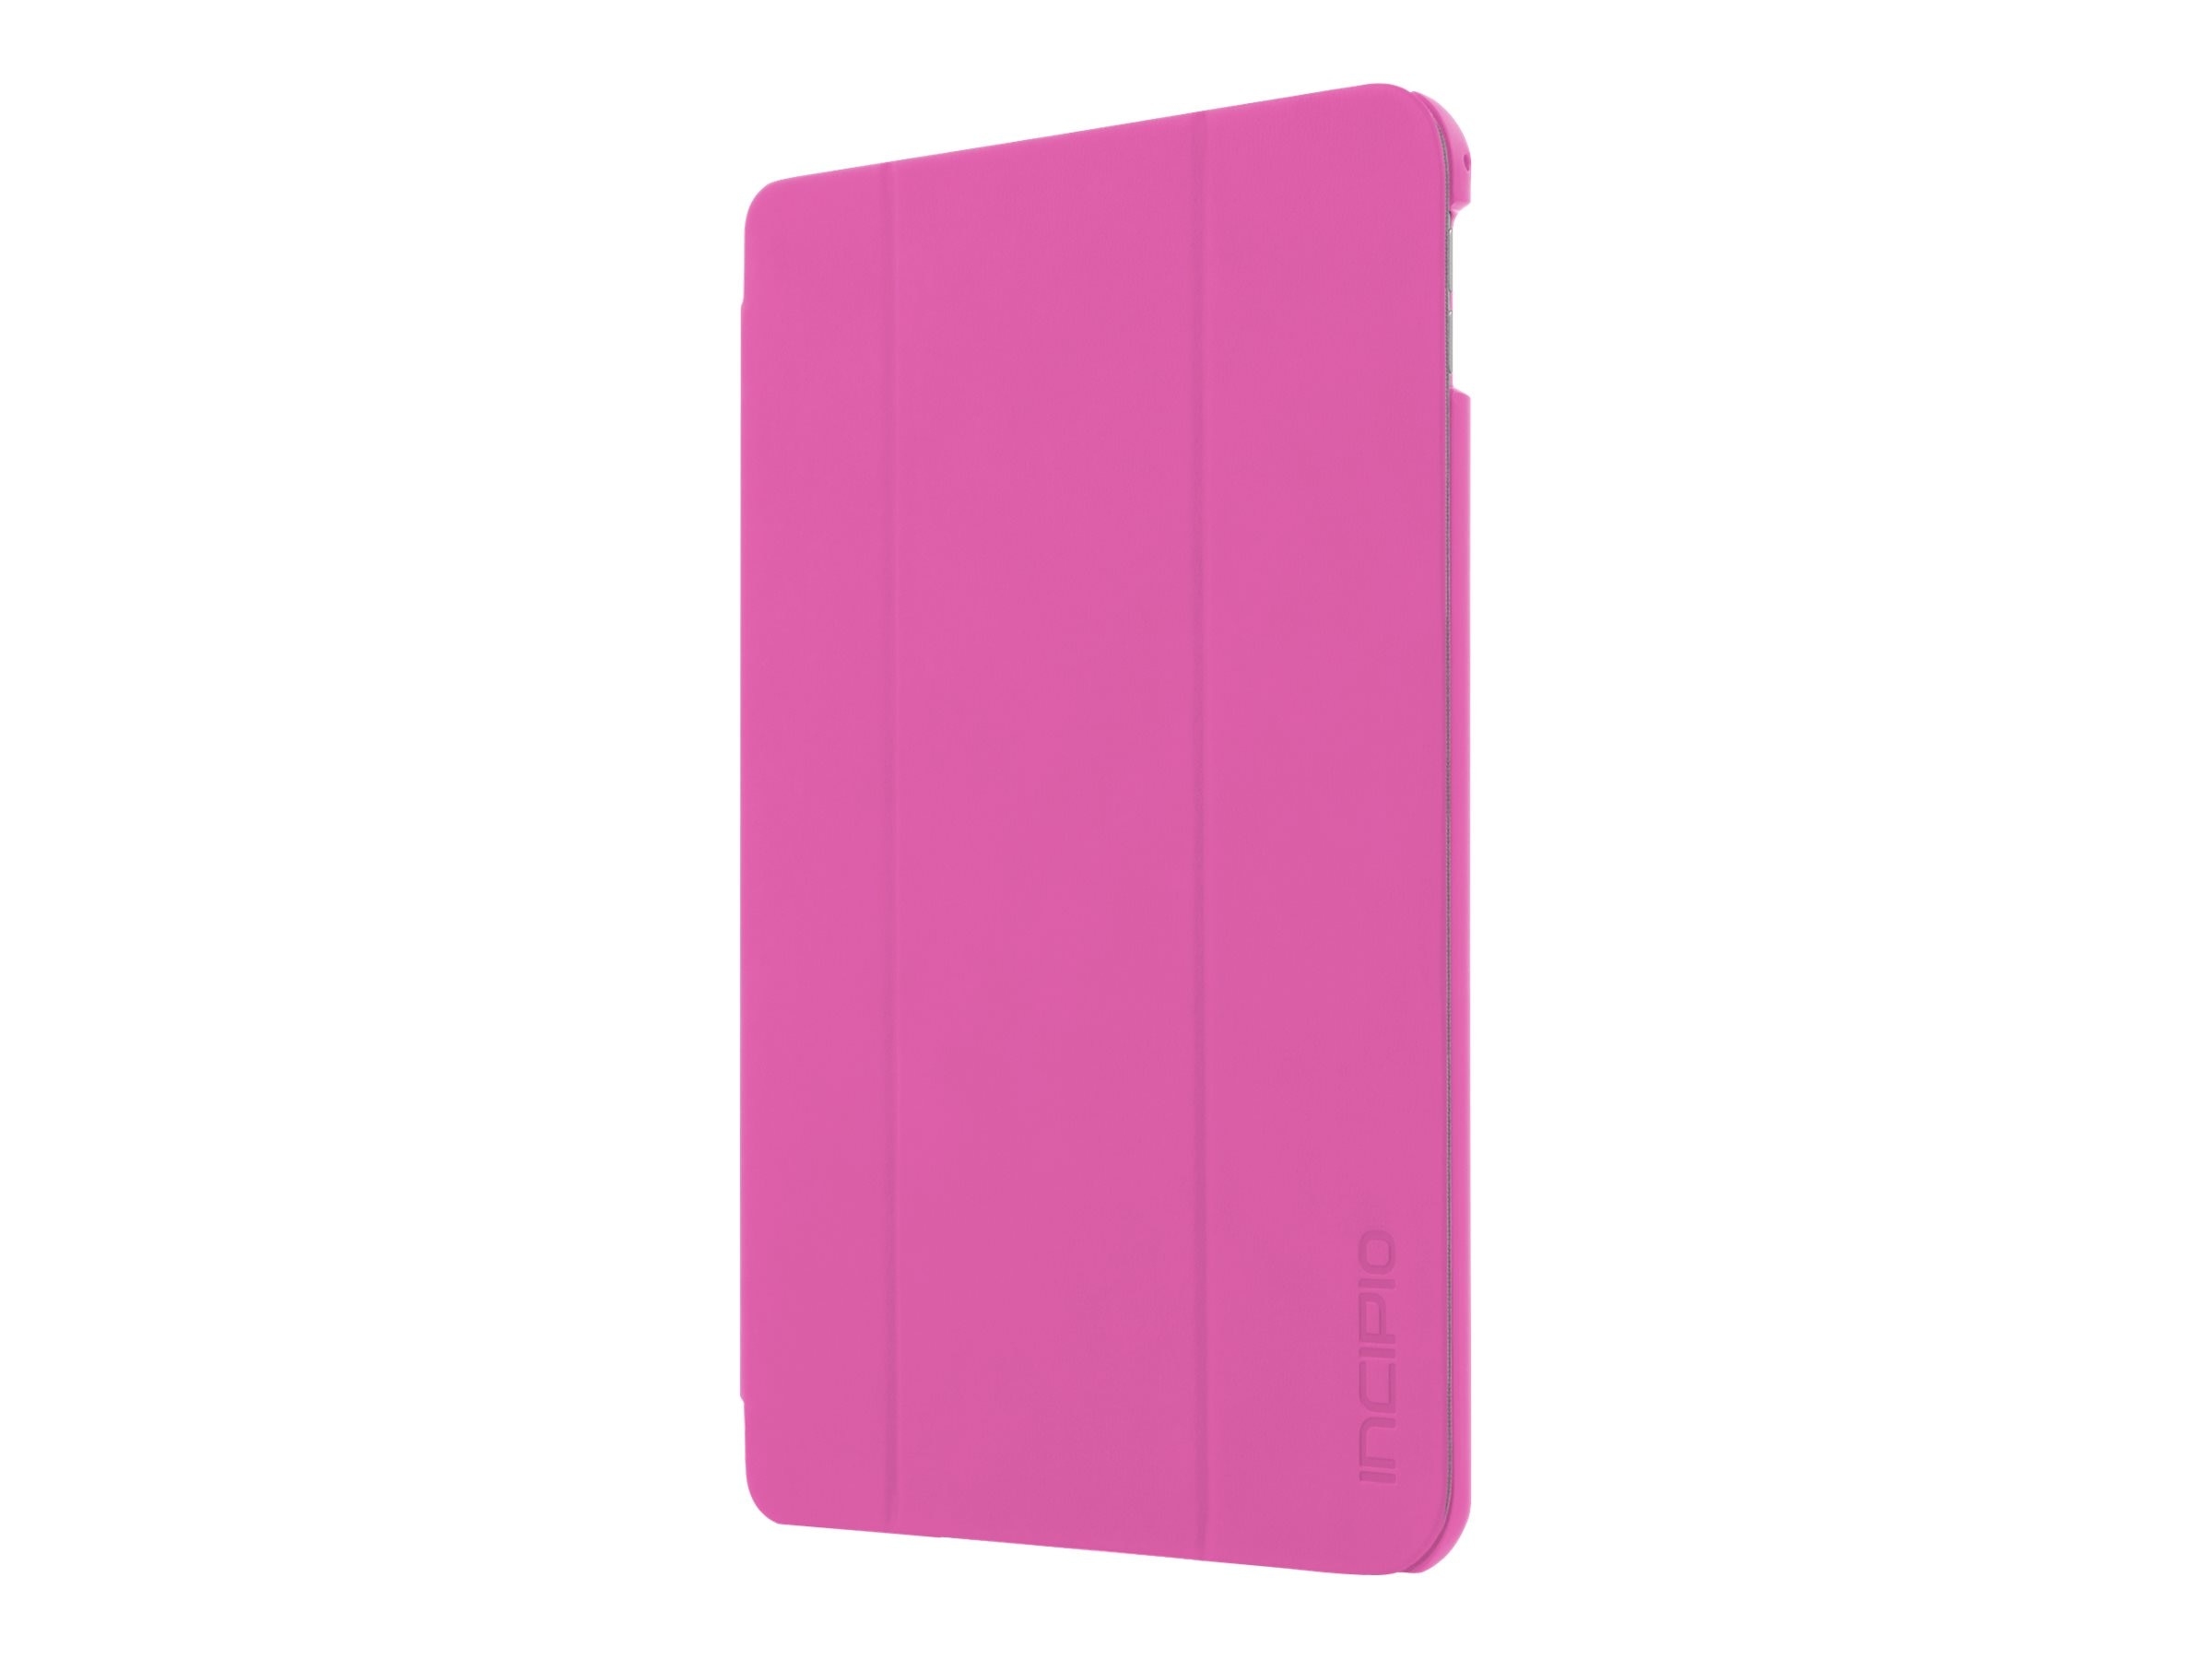 Incipio Tuxen for iPad Air 2, Pink